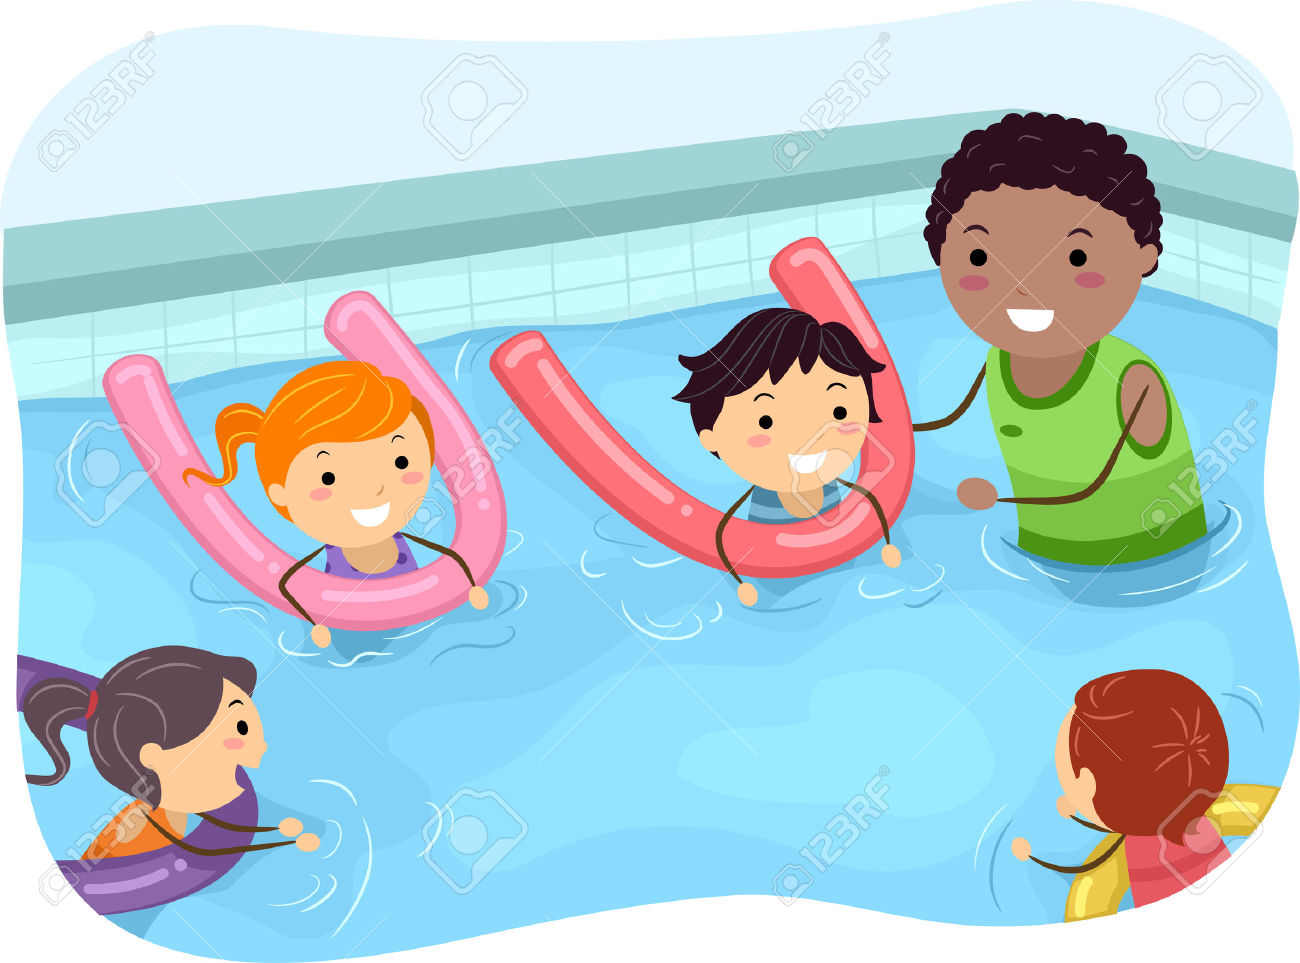 Kids swimming clipart 1 » Clipart Station